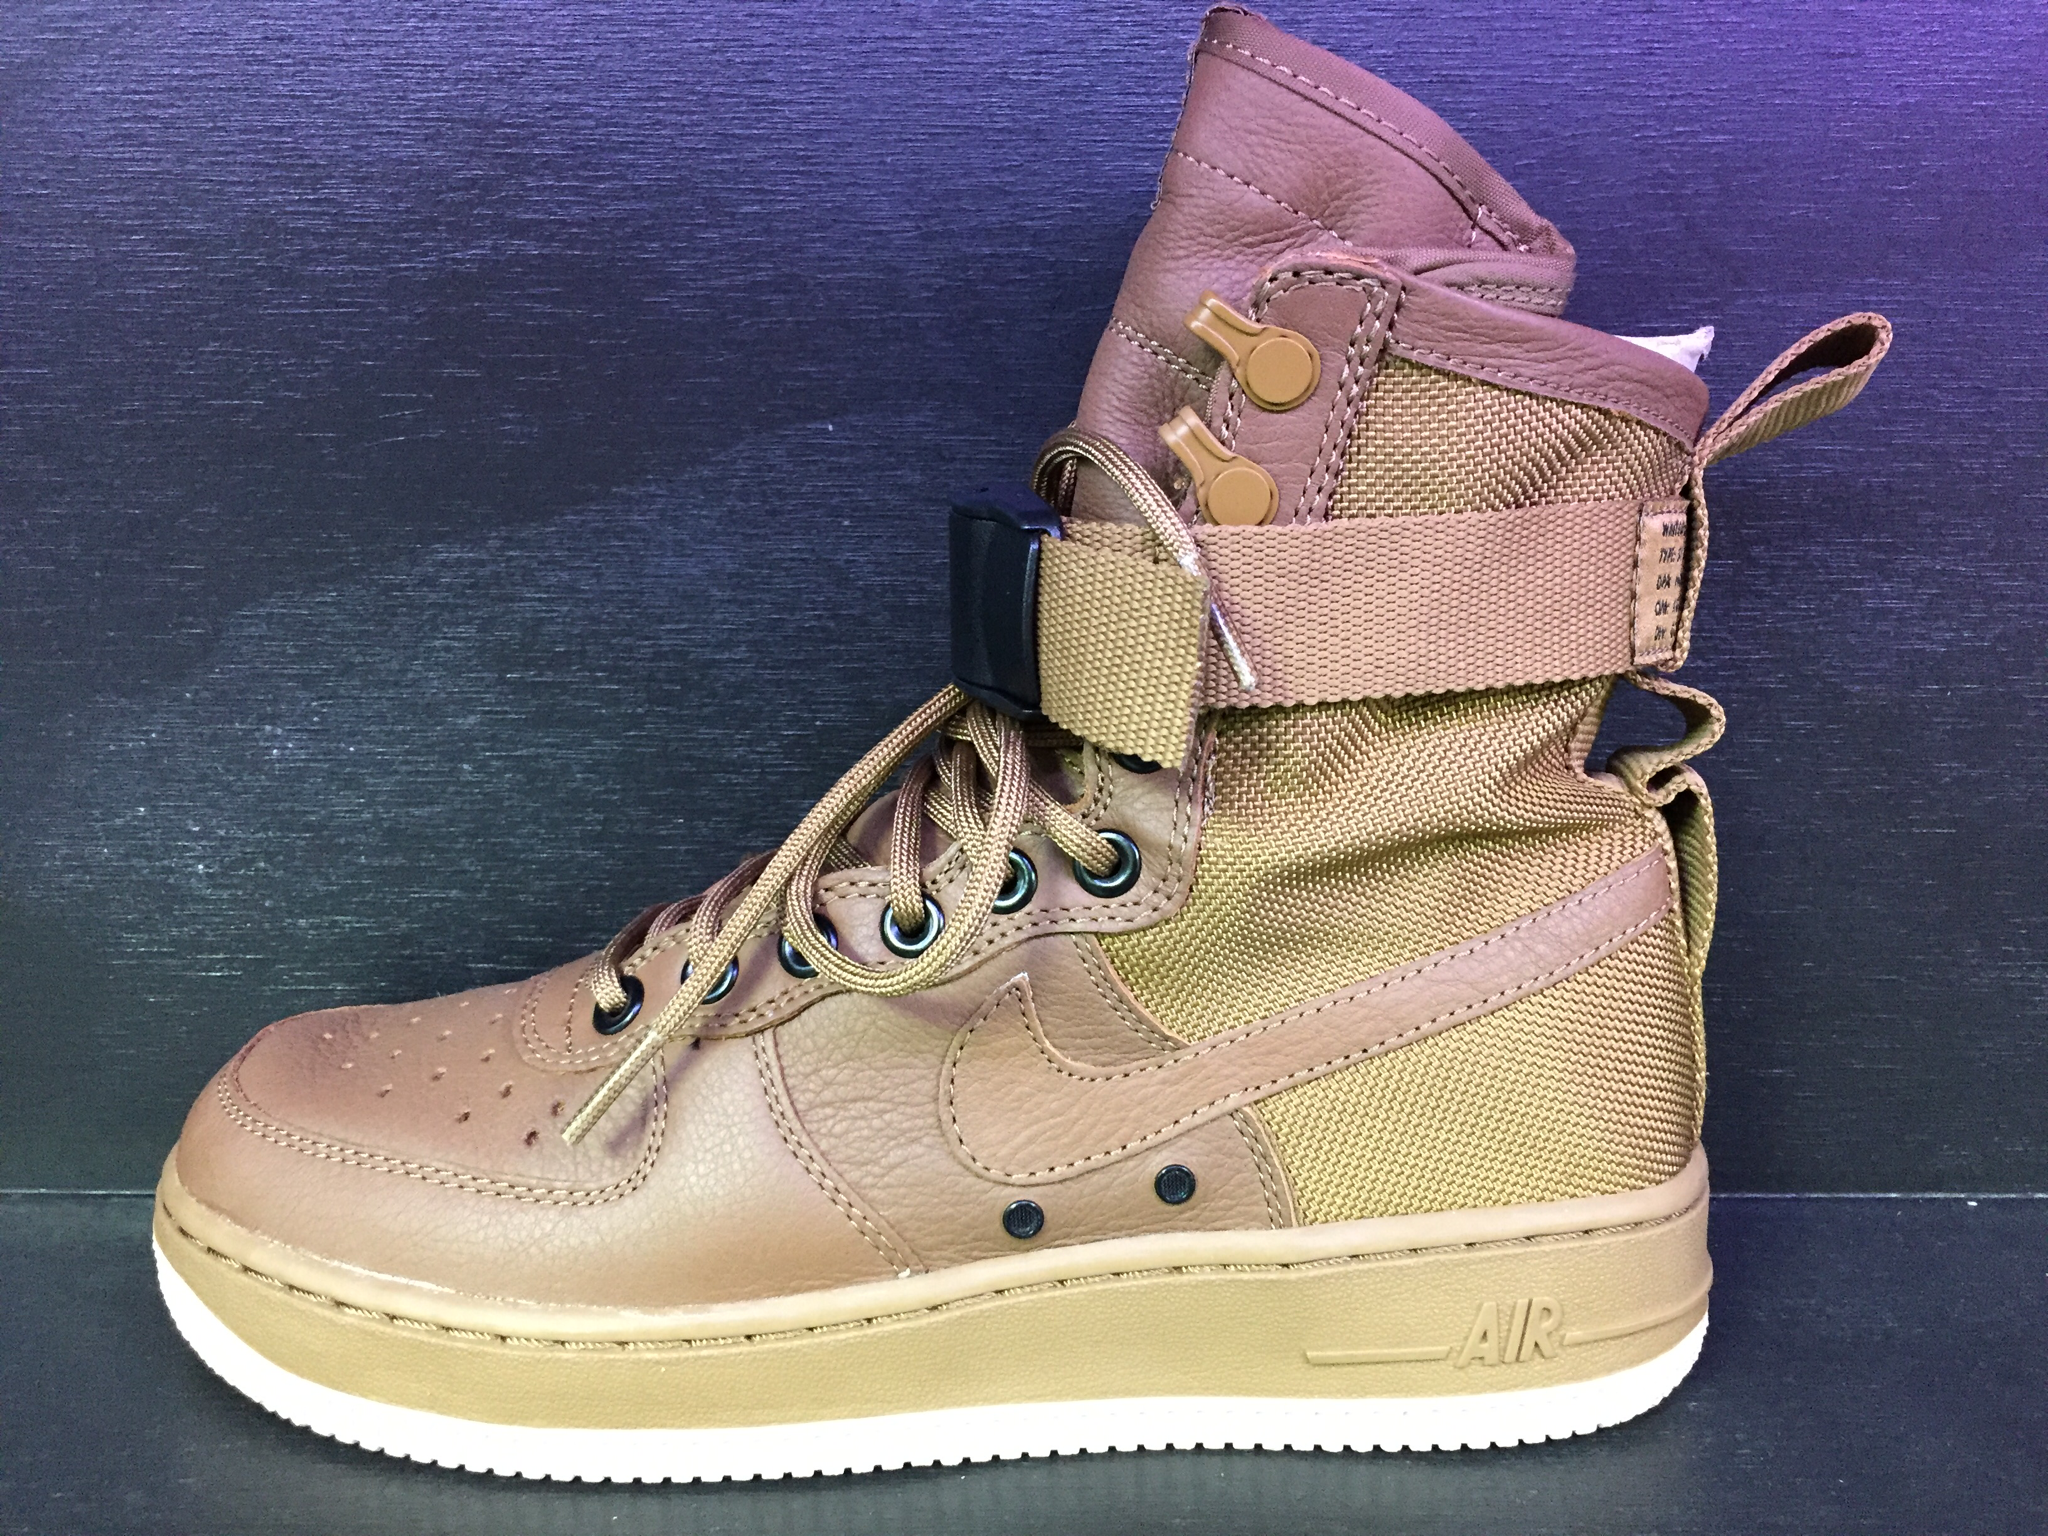 Special Field Air Force 1 'Golden Beige' Woman's